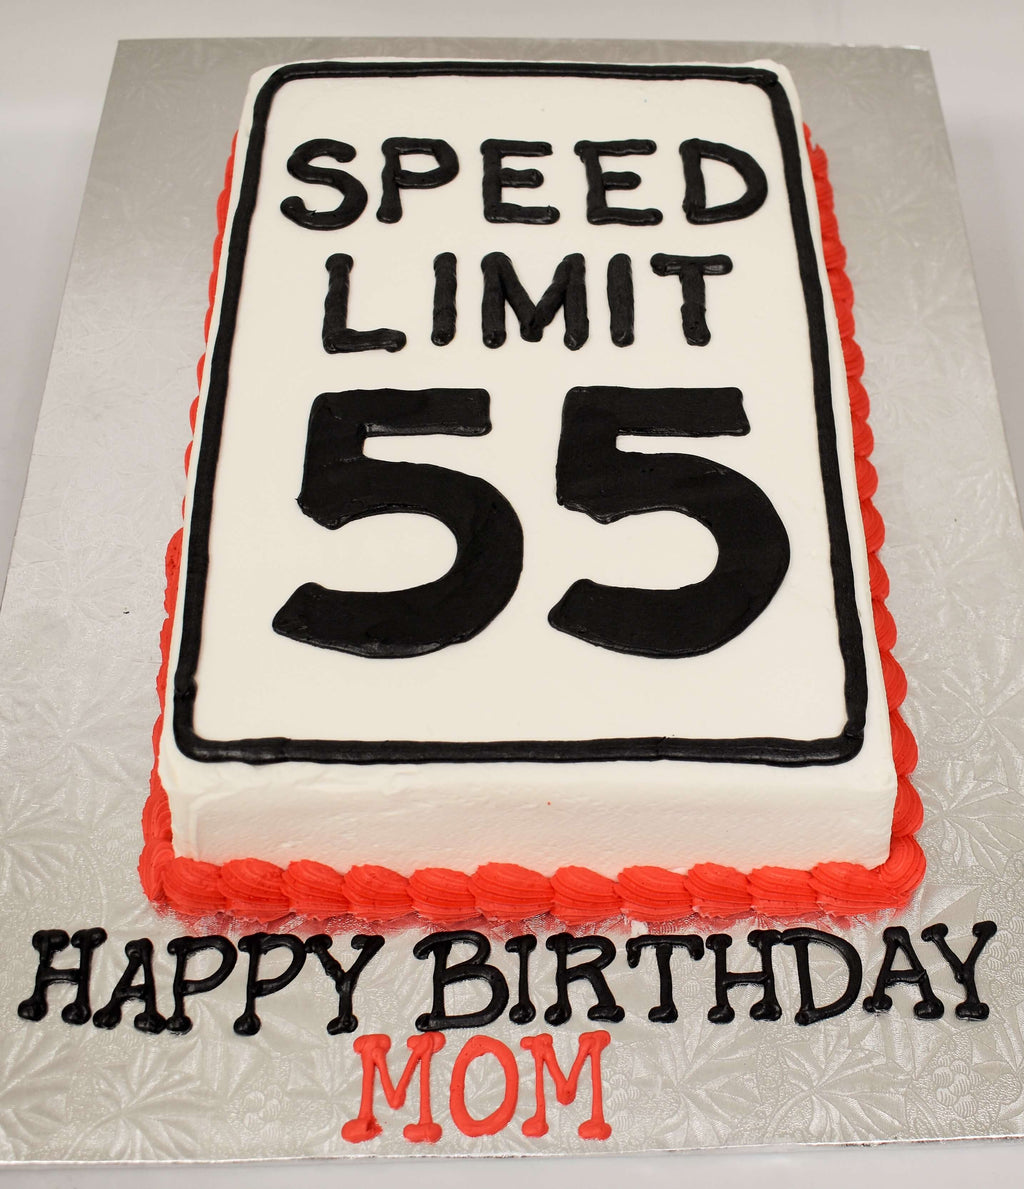 MaArthur's Bakery Custom Cake with the Words Speed Limit 55 Written in Black